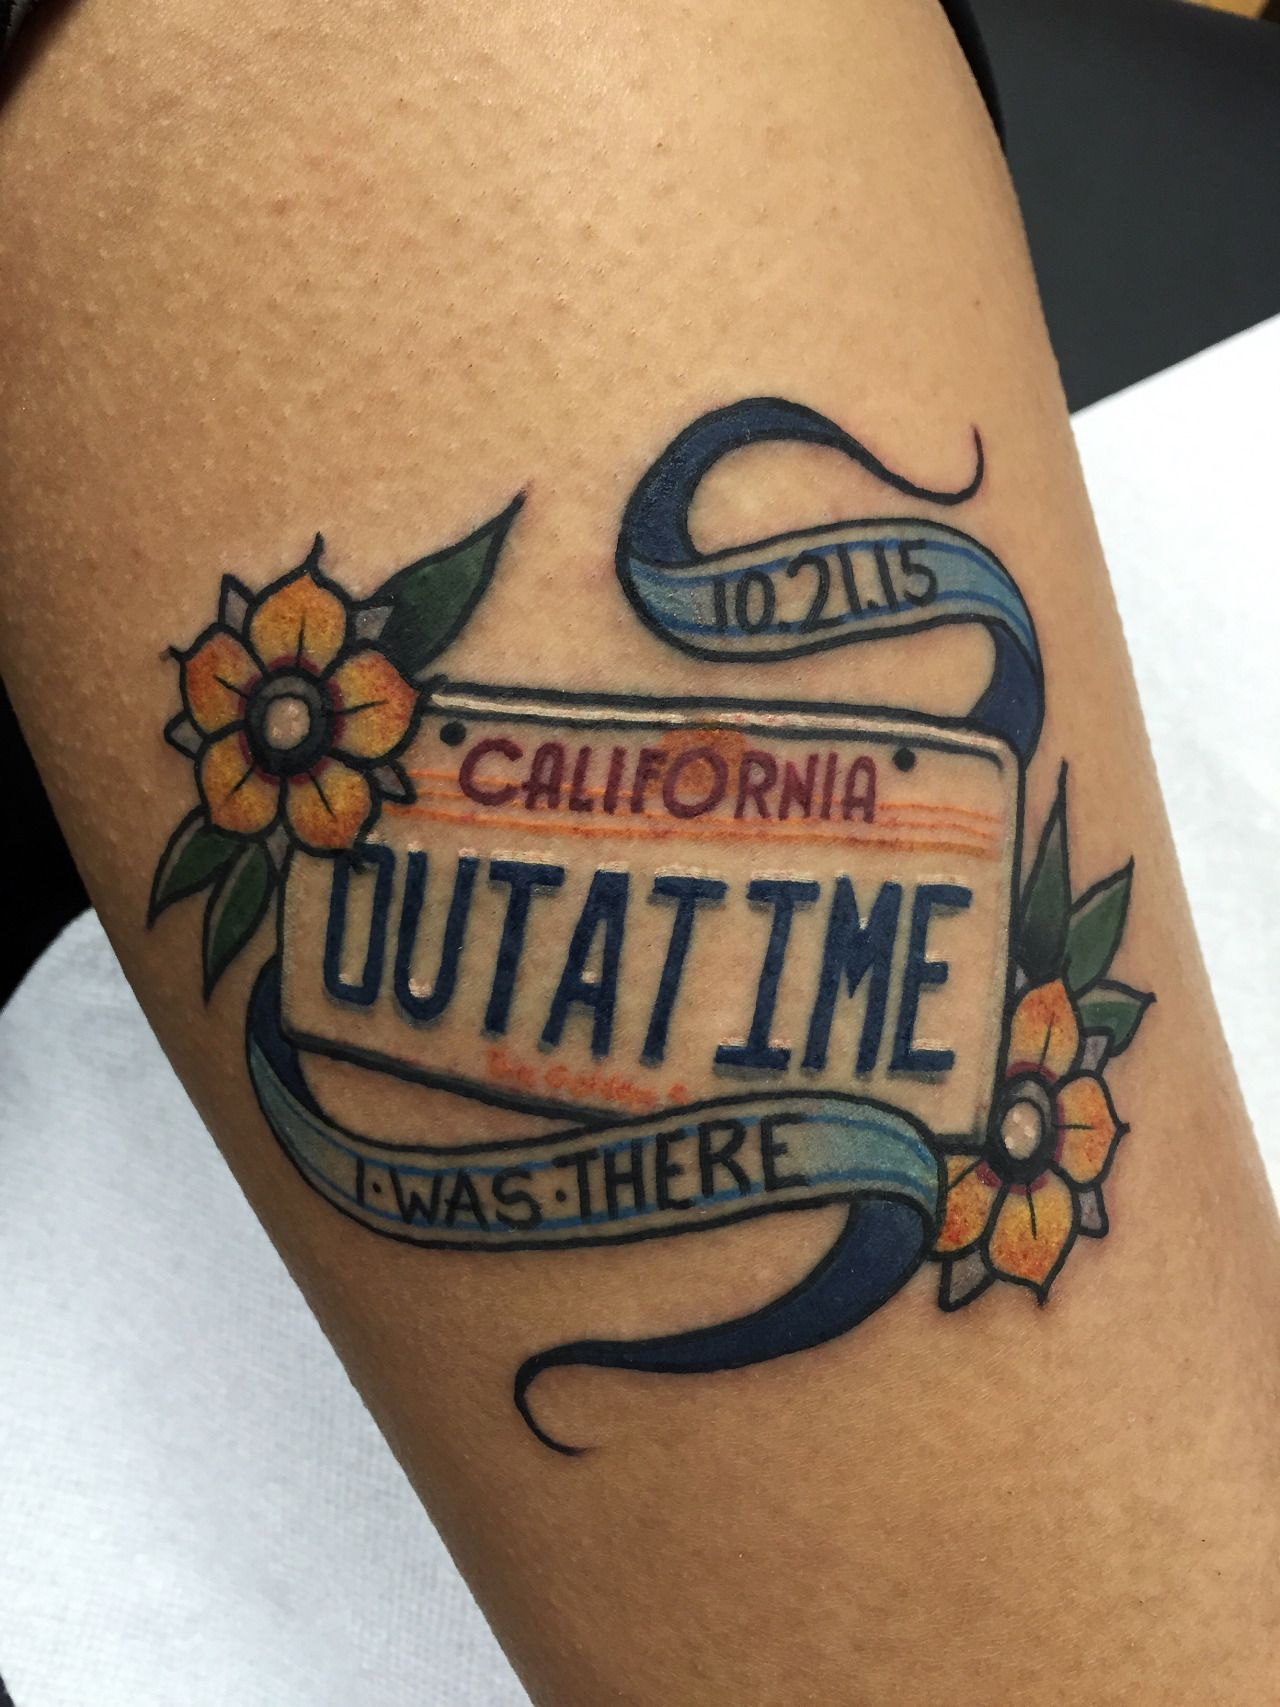 Fuckyeahtattoos back to the future tattoo done by robert for Tattoo pico rivera